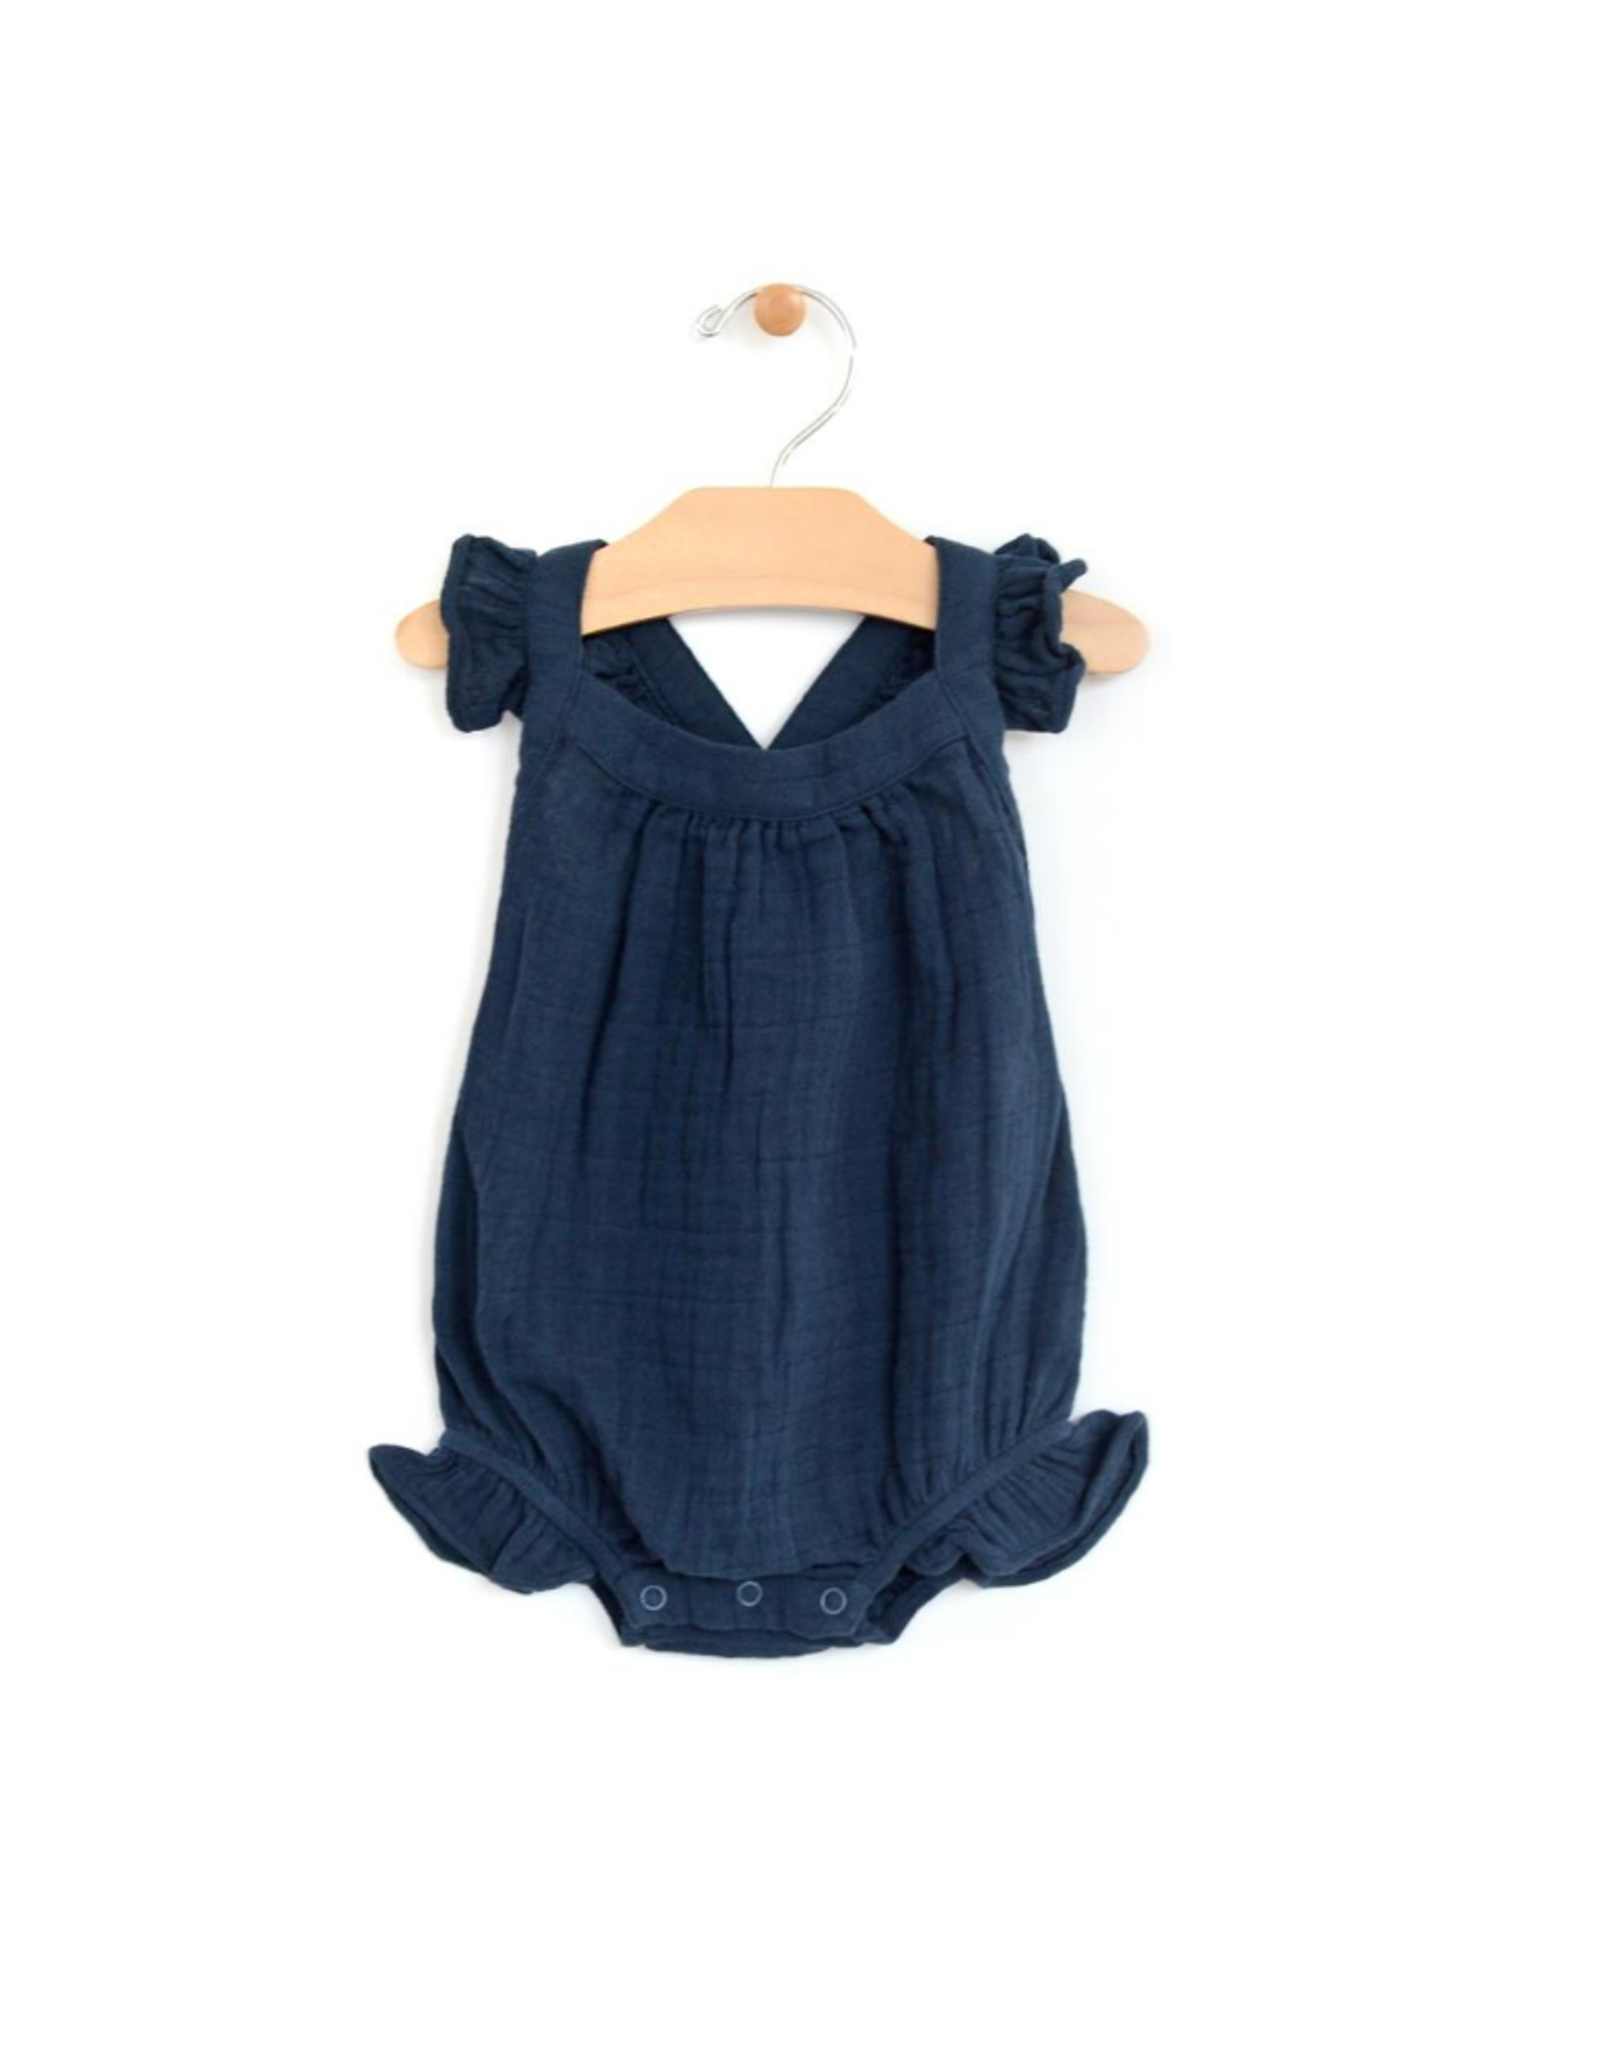 City Mouse City Mouse- Muslin Cross Back Romper- Midnight Blue